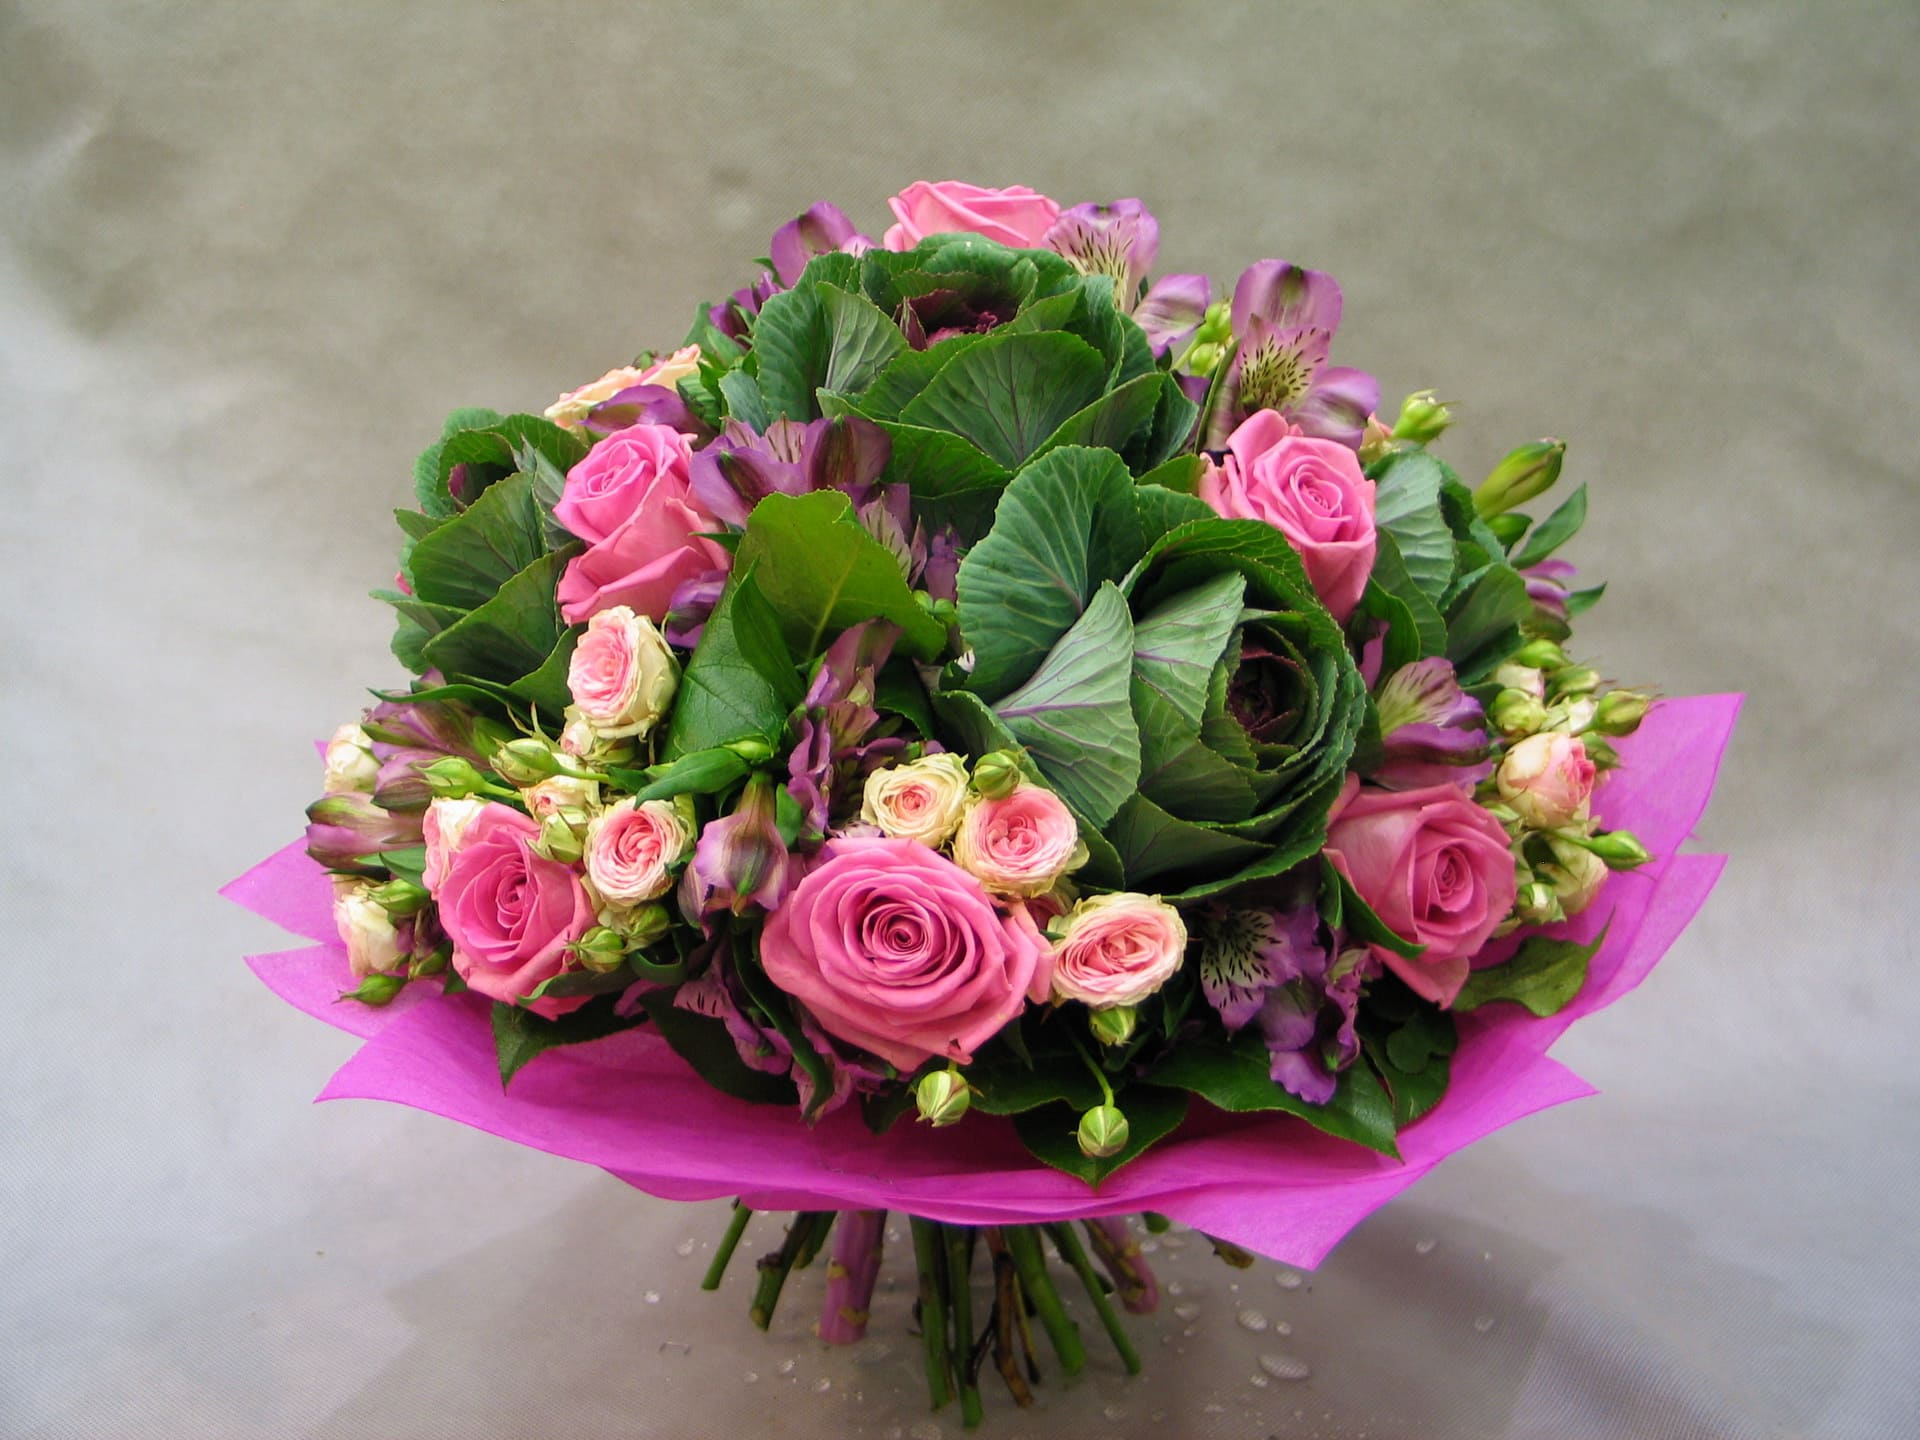 Mazzo Di Fiori Belli.Pictures Of Beautiful Bouquets Of Flowers 80 Pieces Of Stunning